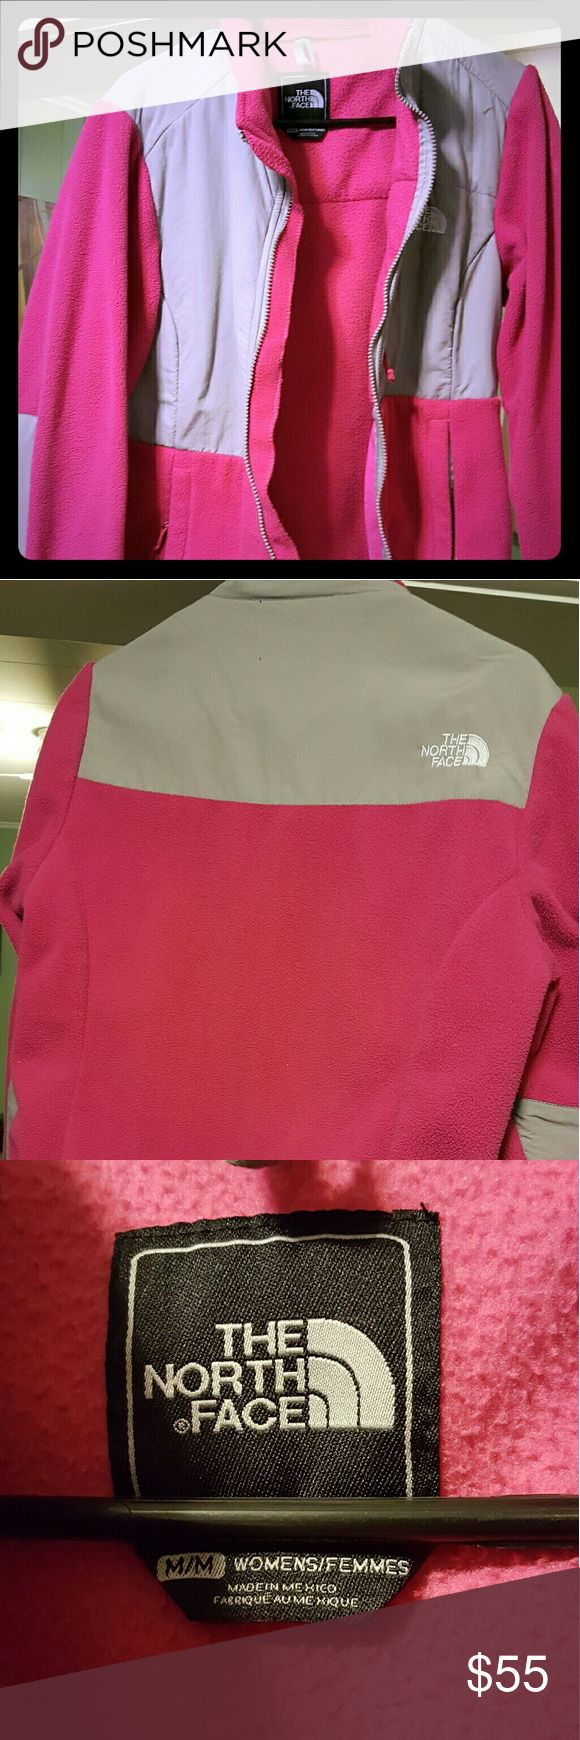 North Face fleece jacket Perfect condition pink North Face fleece jacket. Only worn a couple times. Selling it because it is too big for me. The North Face Jackets & Coats